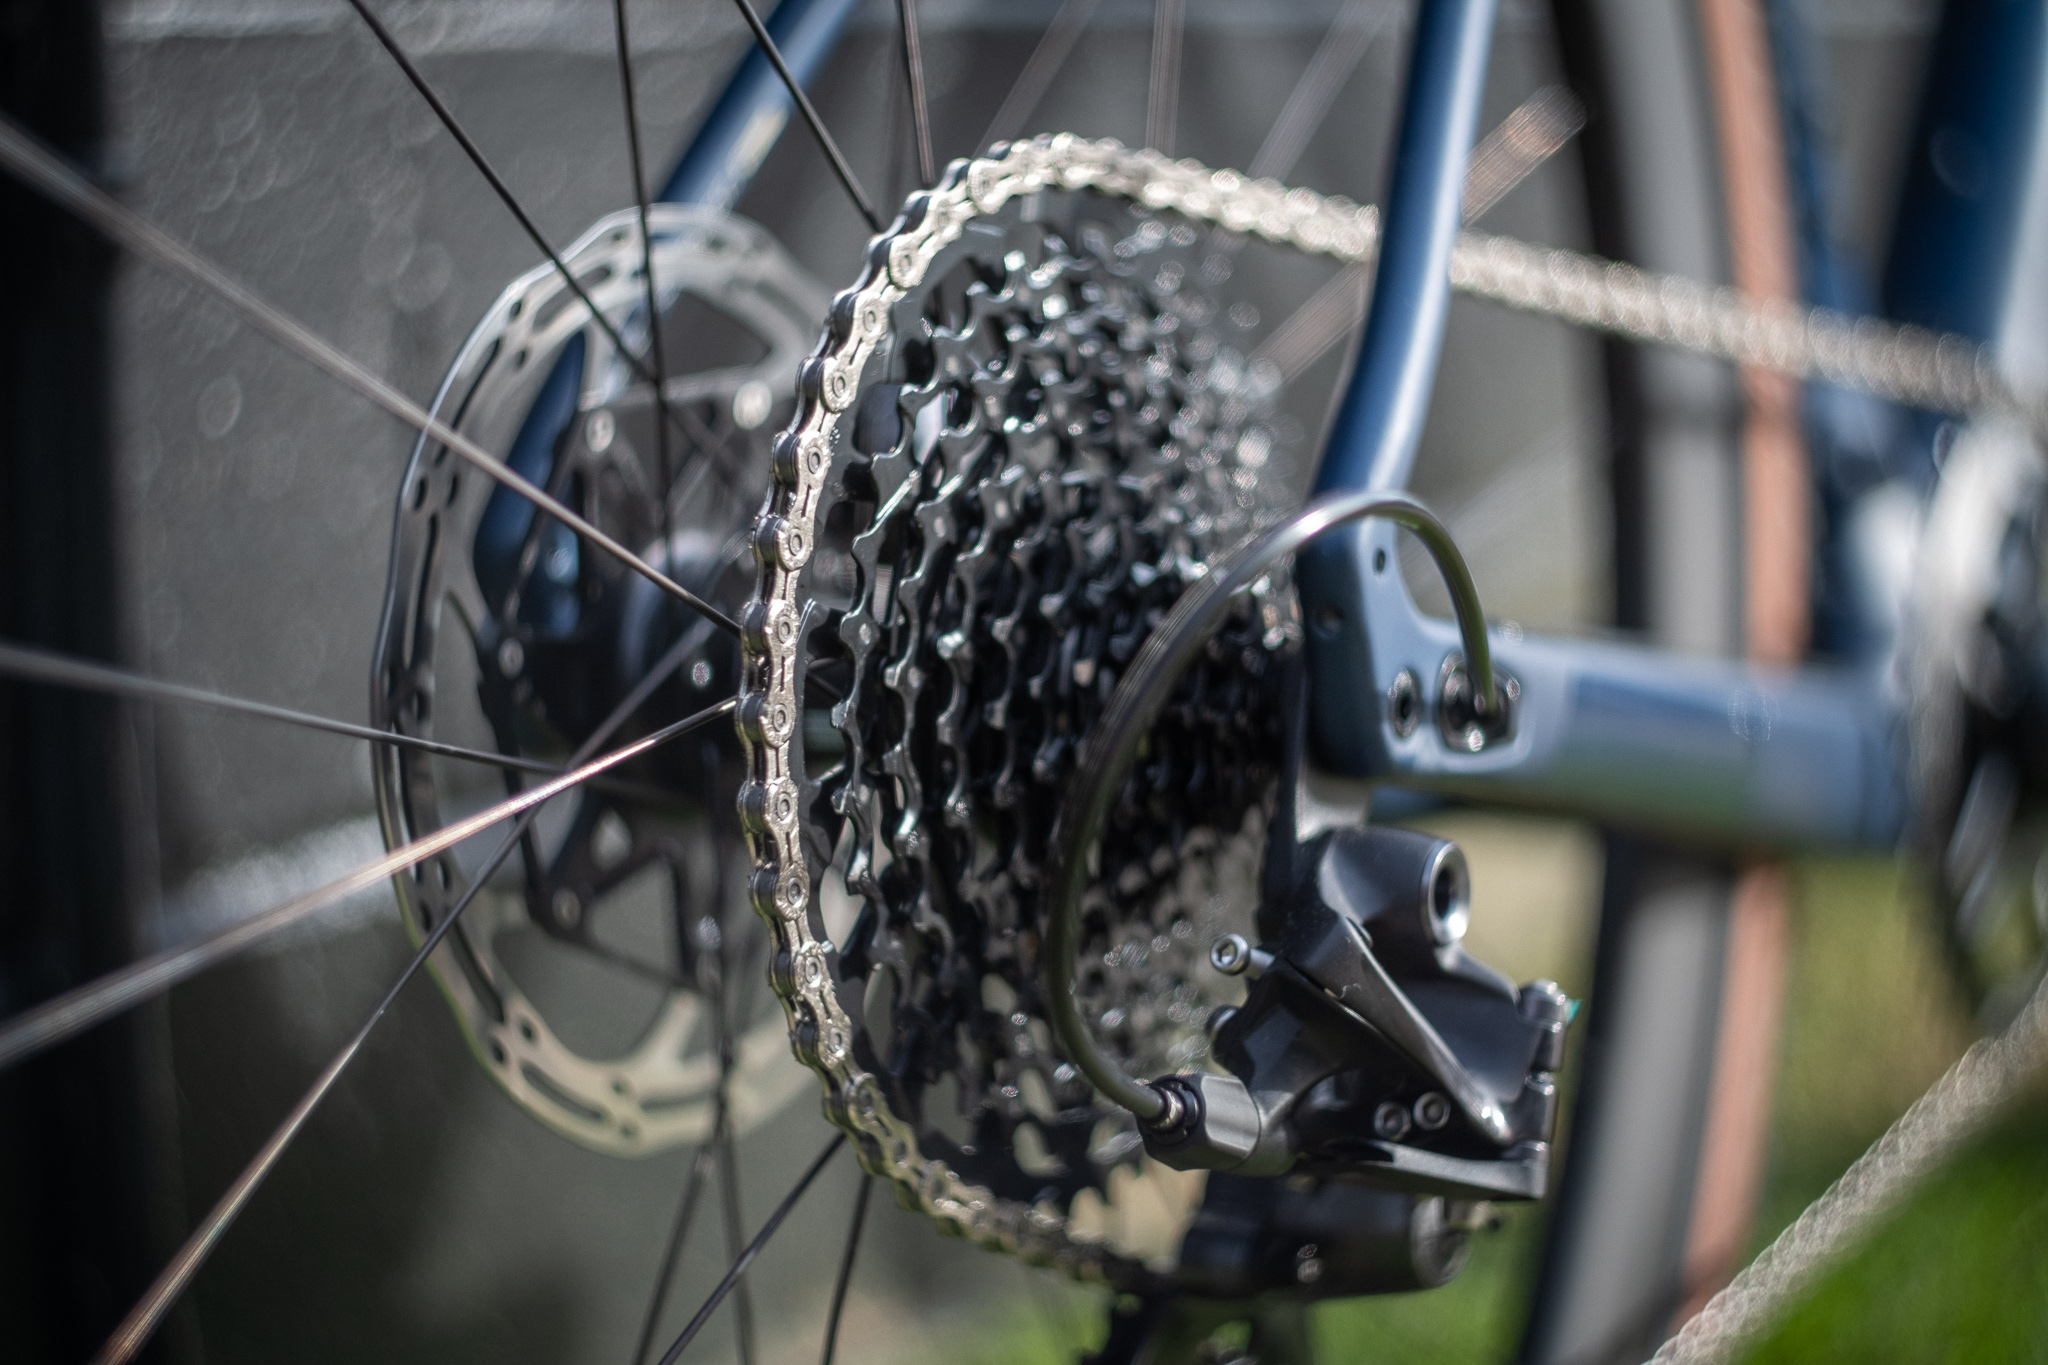 2020 Specialized Diverge Comp X1 rear derailleur detail